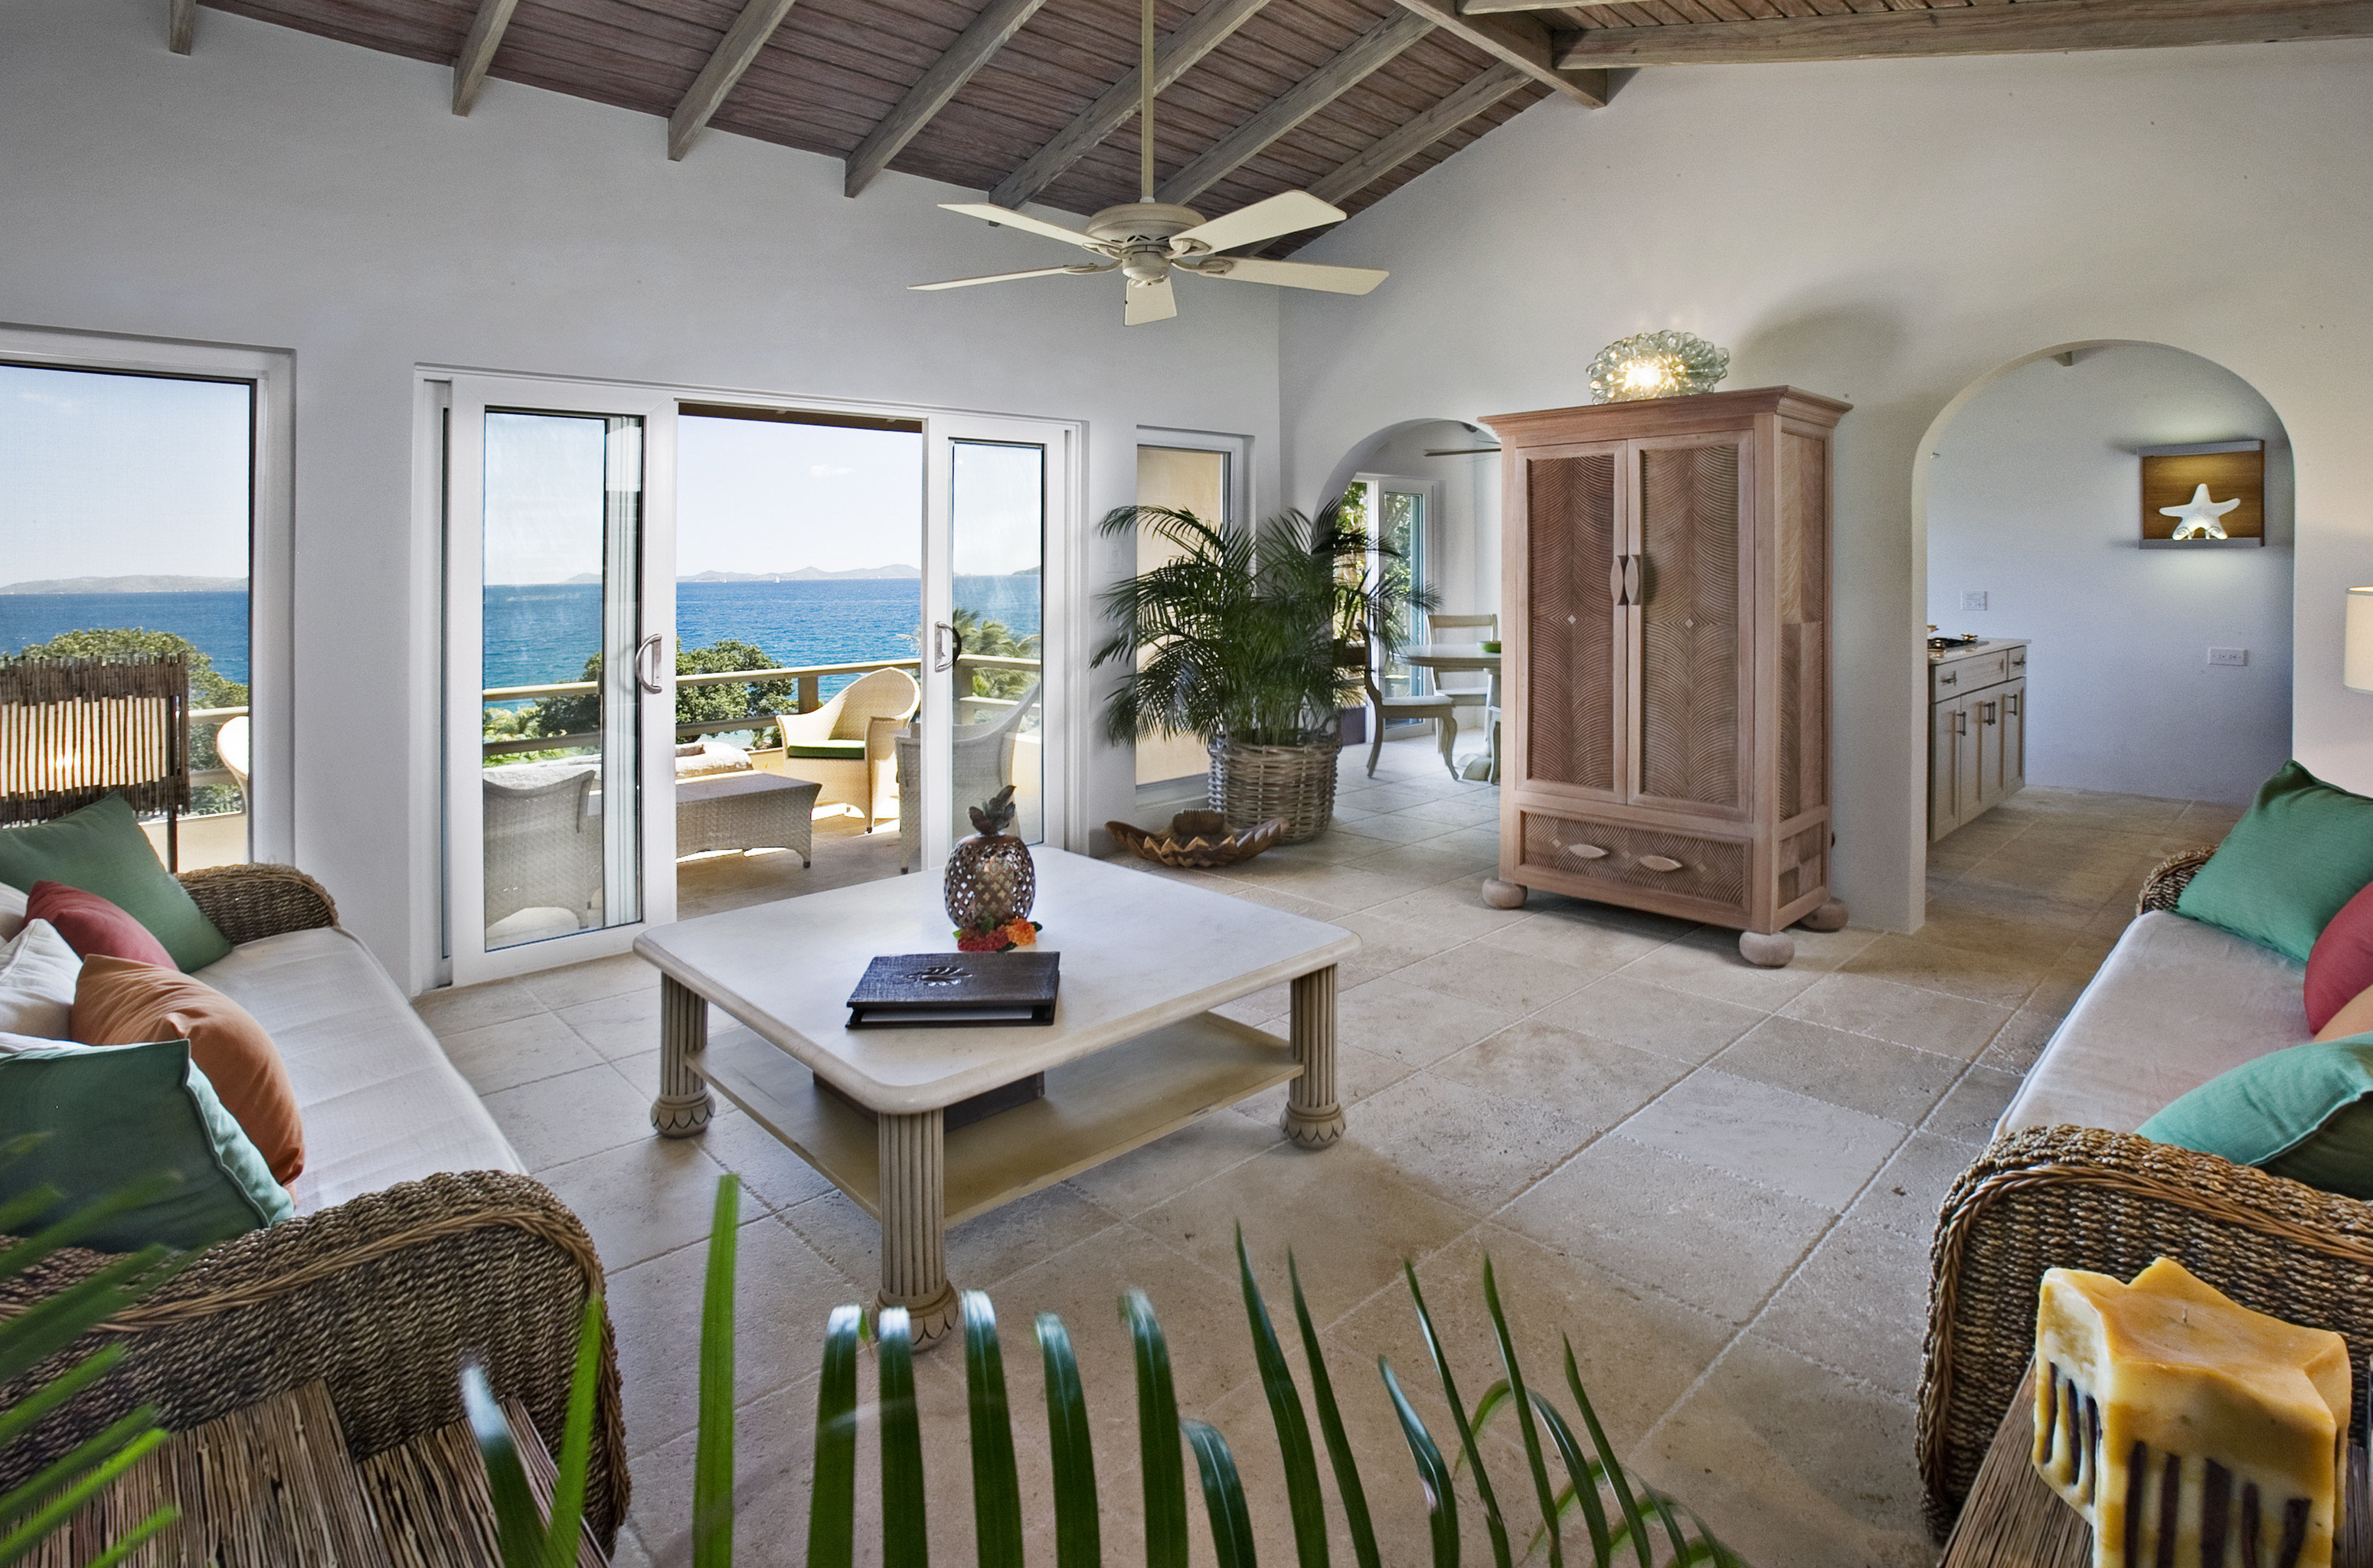 Balcony Luxury Modern Resort Scenic views property house home living room Villa cottage farmhouse mansion porch